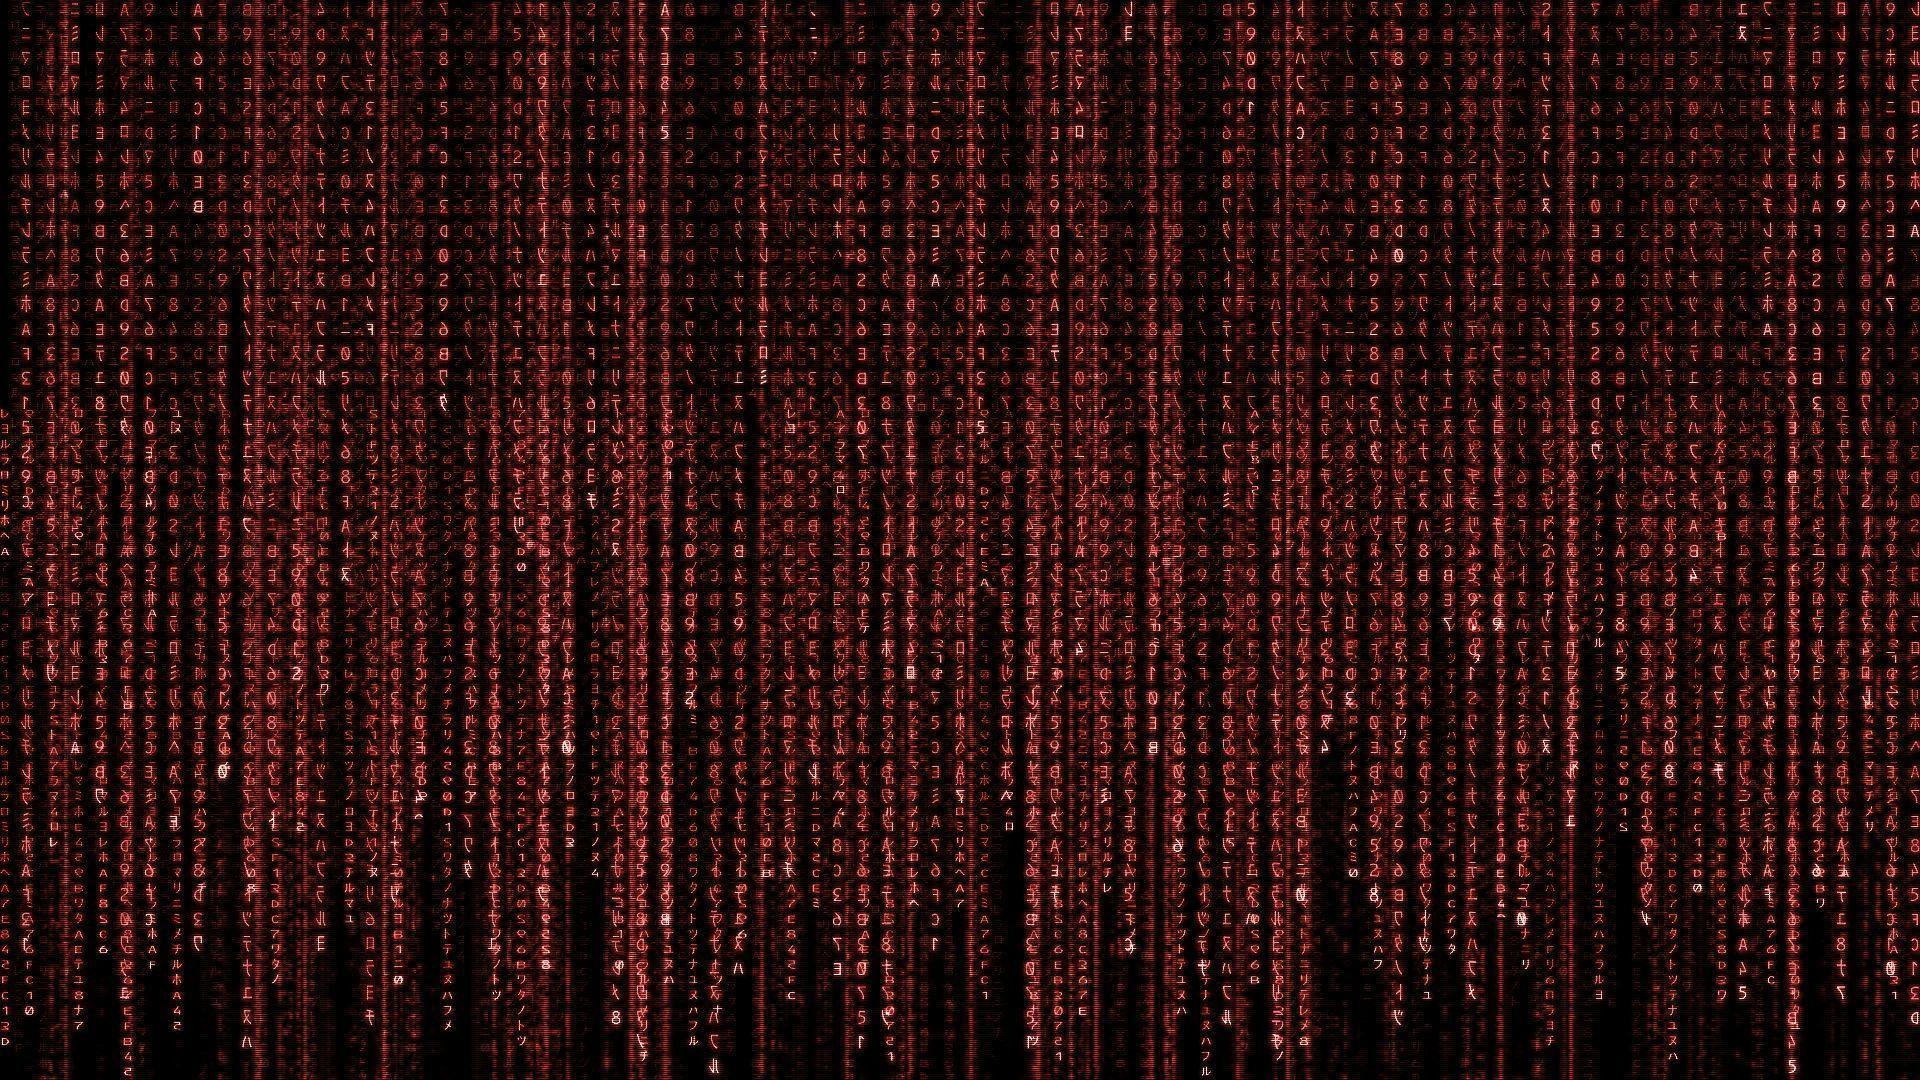 Matrix Wallpapers - Wallpaper Cave